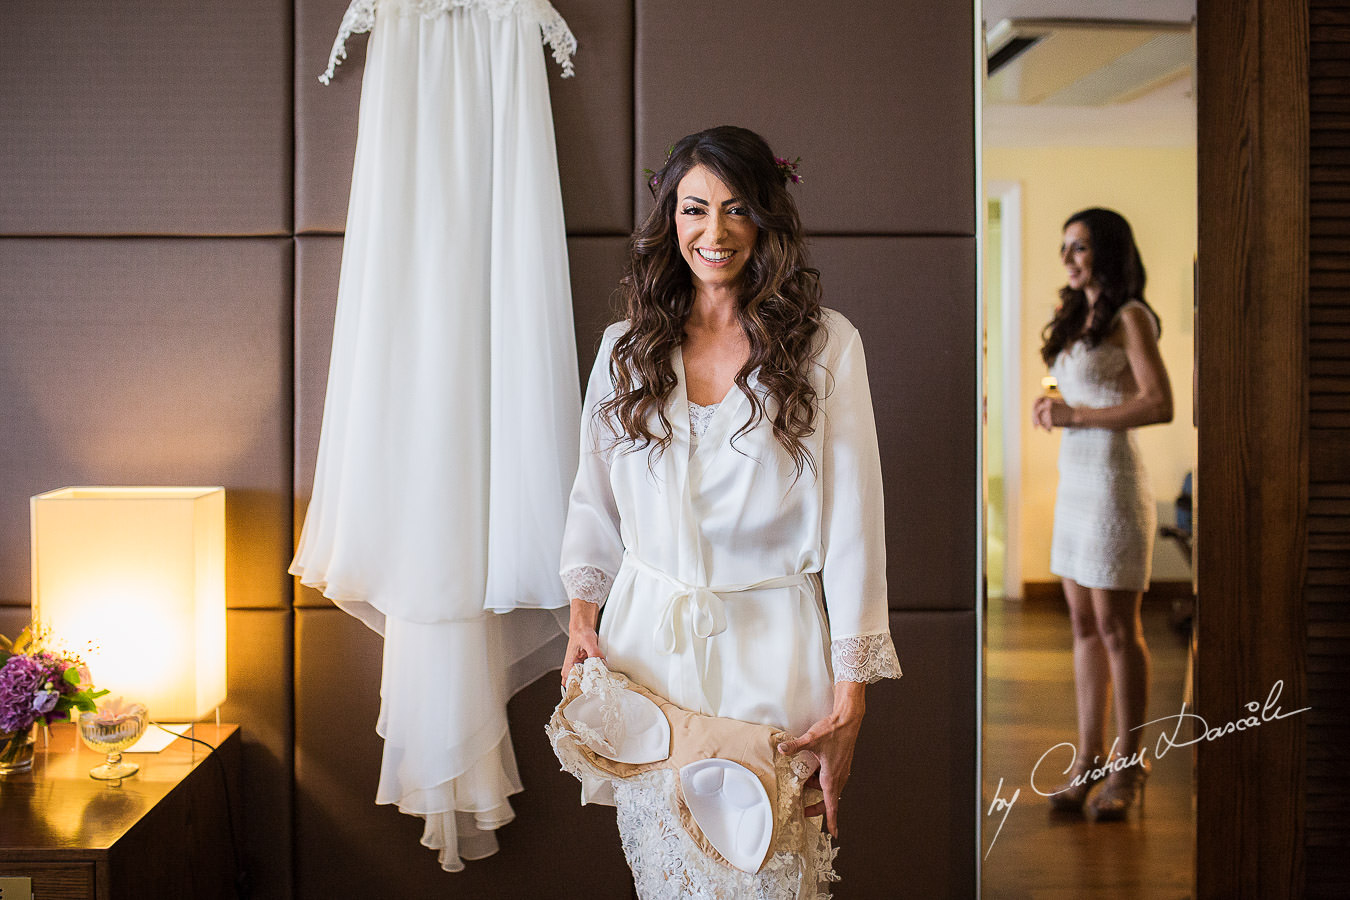 Christiana, the bride, smiling while getting ready for her wedding ceremony, moments captured at a wedding in Cyprus by Cristian Dascalu Photographer.